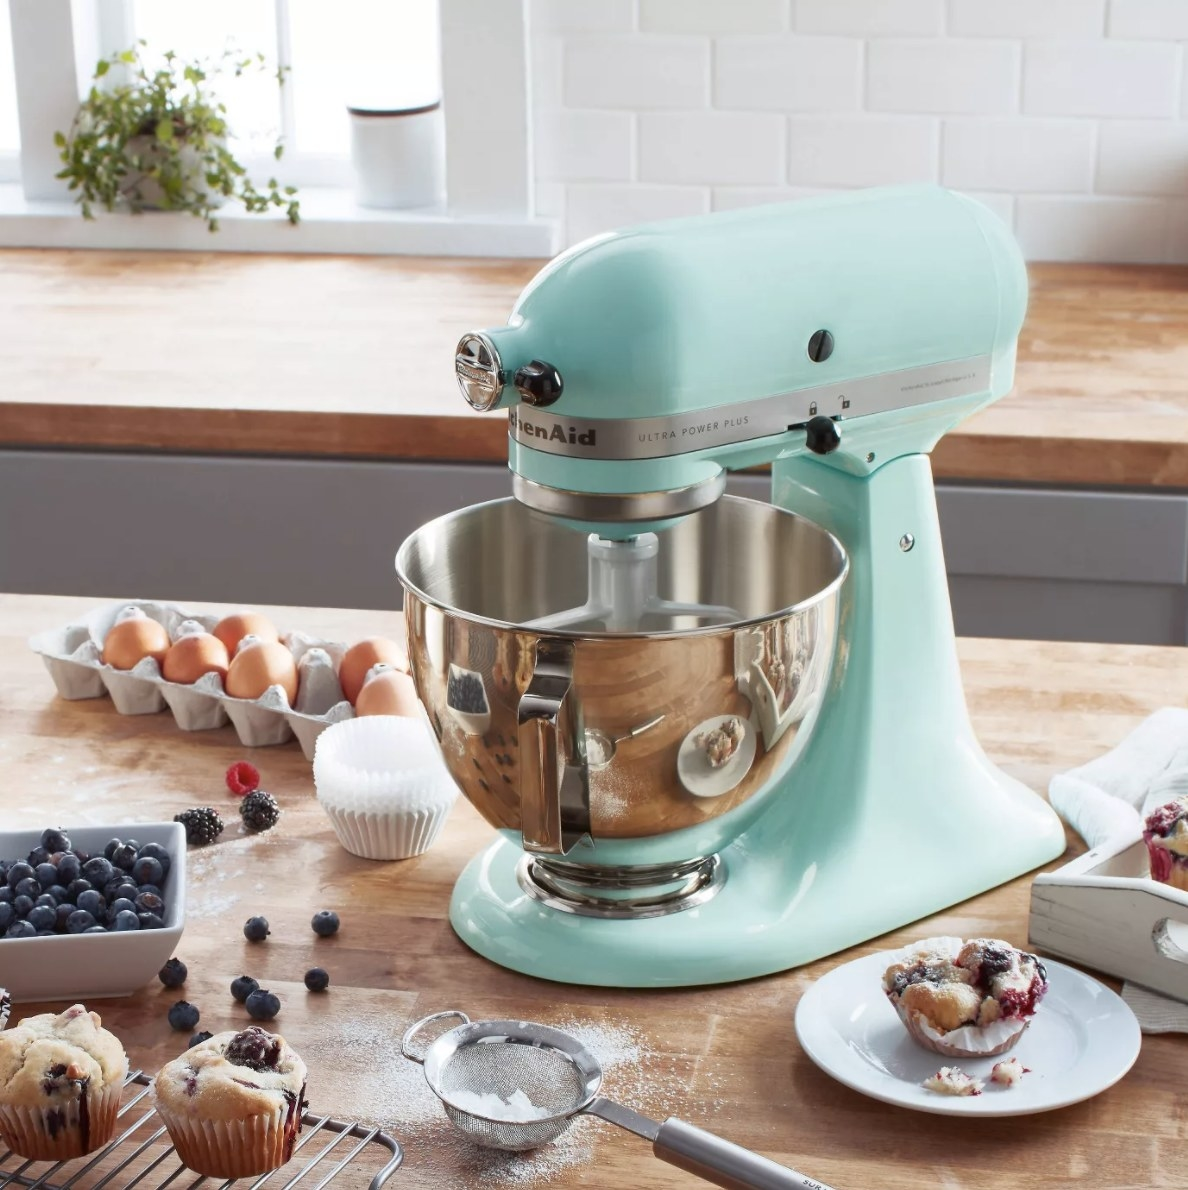 The mixer in ice blue surrounded by ingredients to make blueberry muffins and blueberry muffins